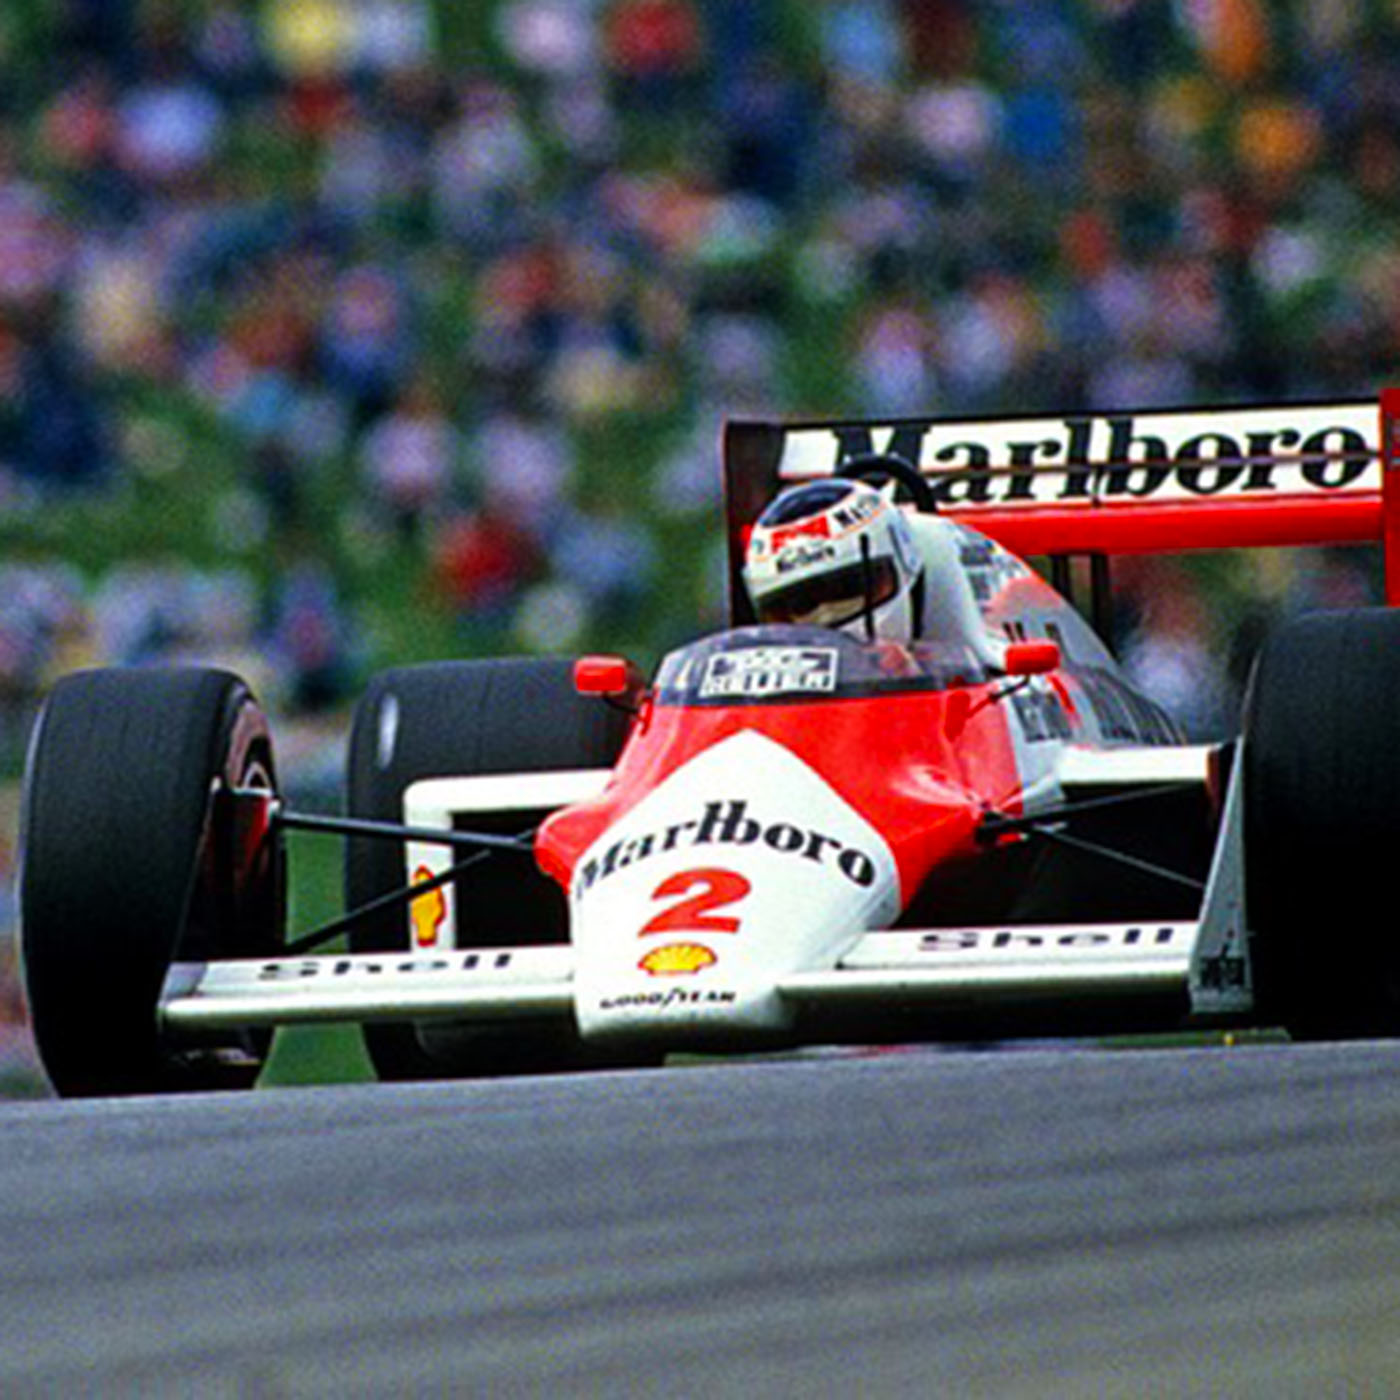 MP 847: Stefan Johansson's Worst F1 Race, Which Includes Hitting a Deer